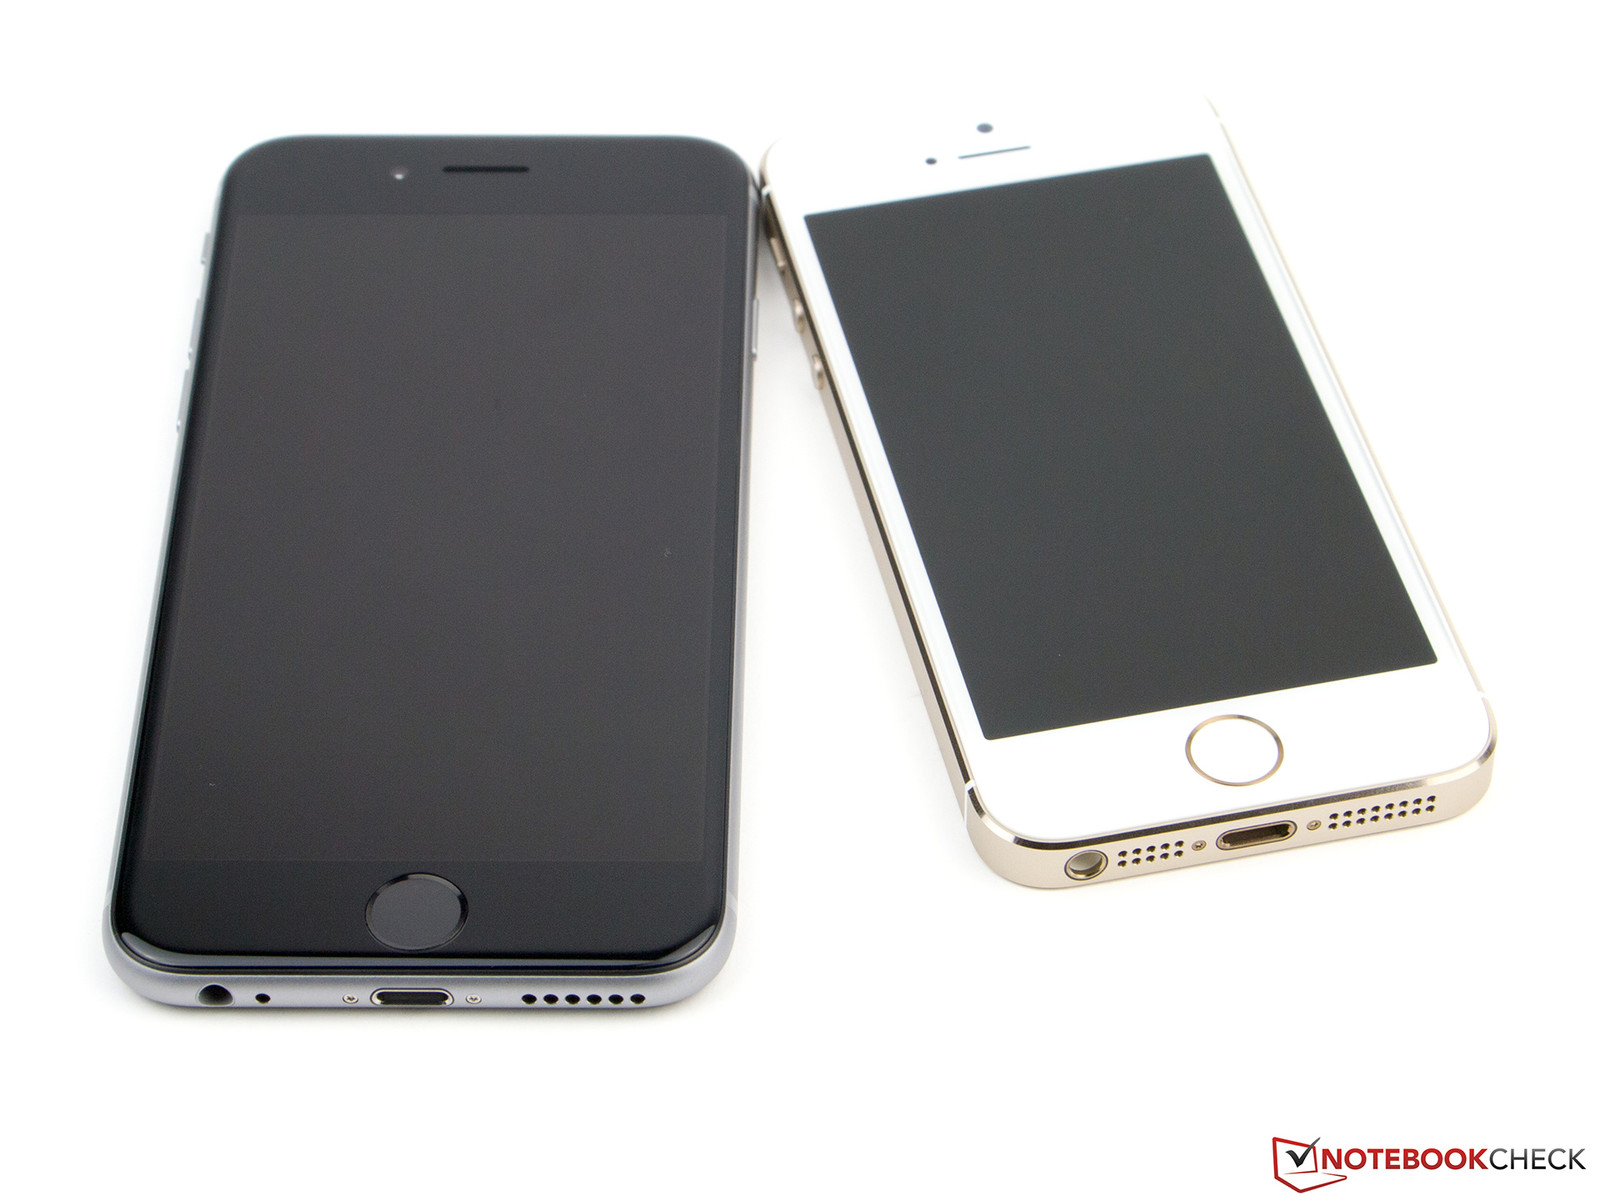 apple iphone 6 black. the iphone 6 is bigger than its predecessor. apple iphone black